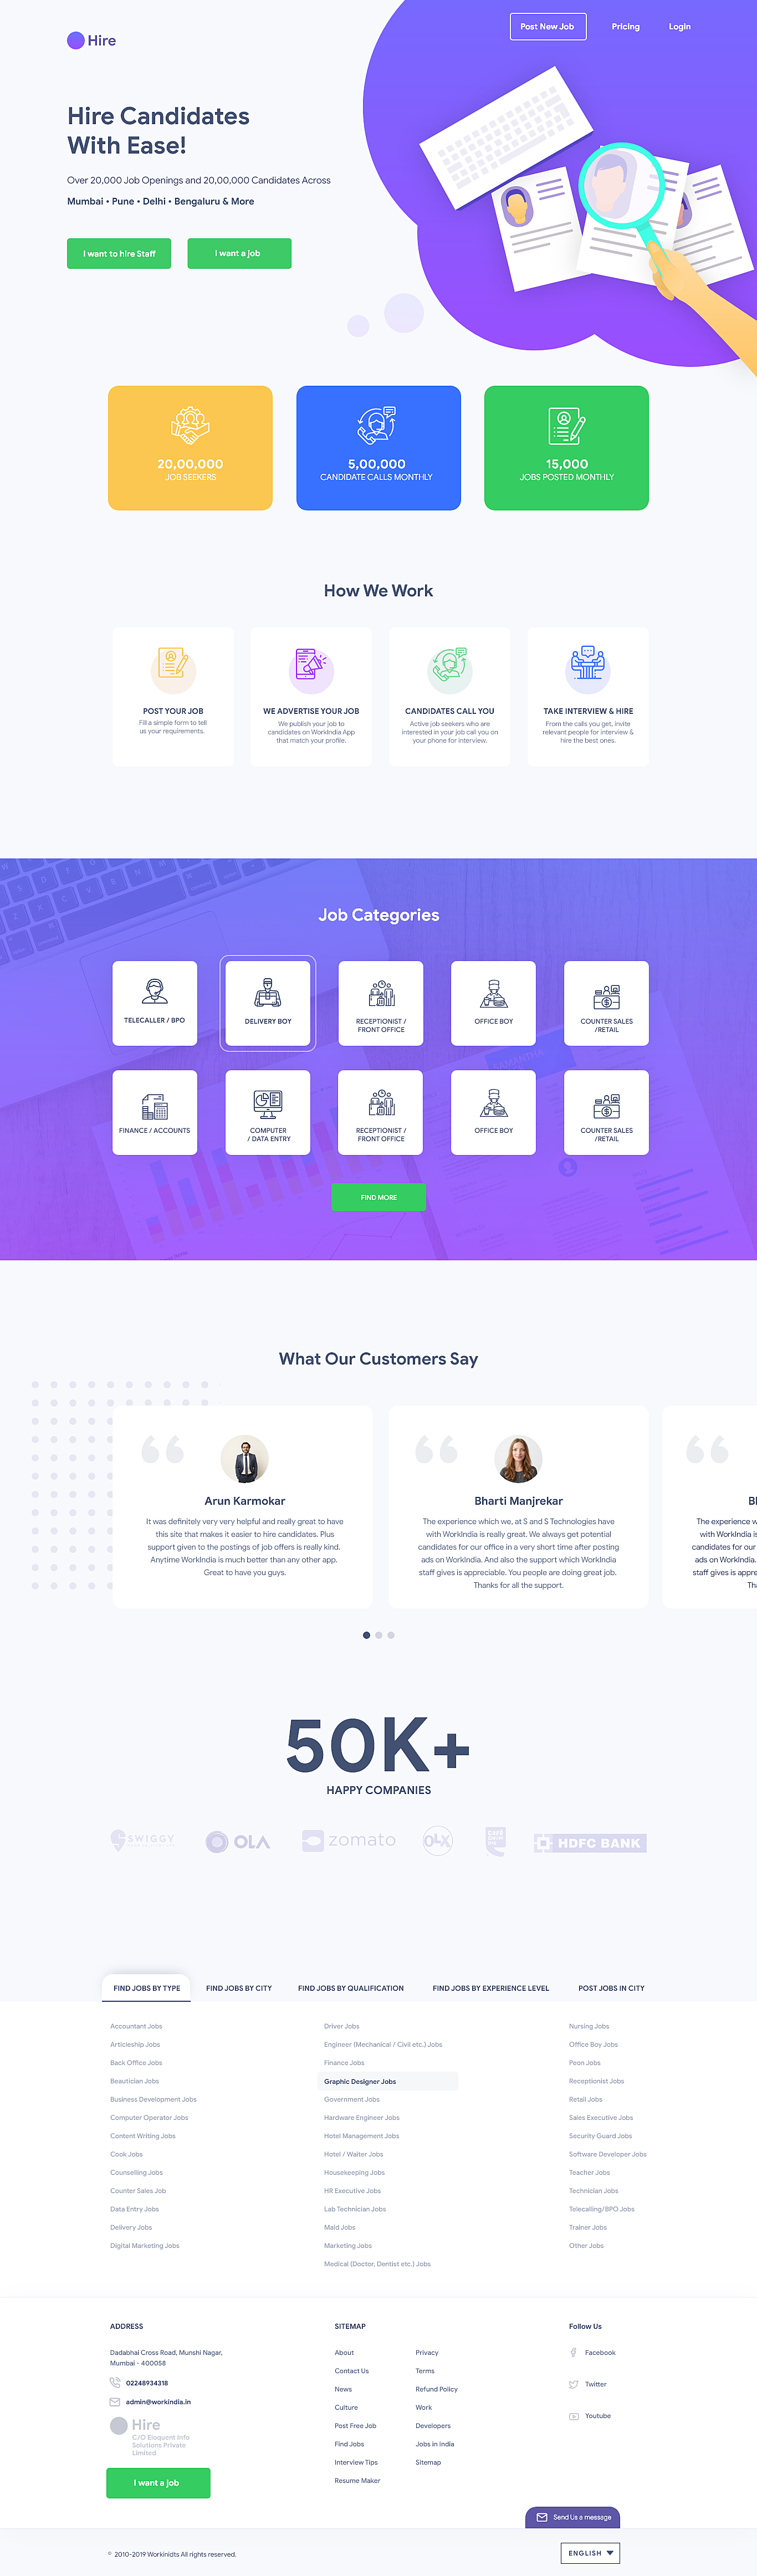 Hire Job Portal Landing Page Freebie